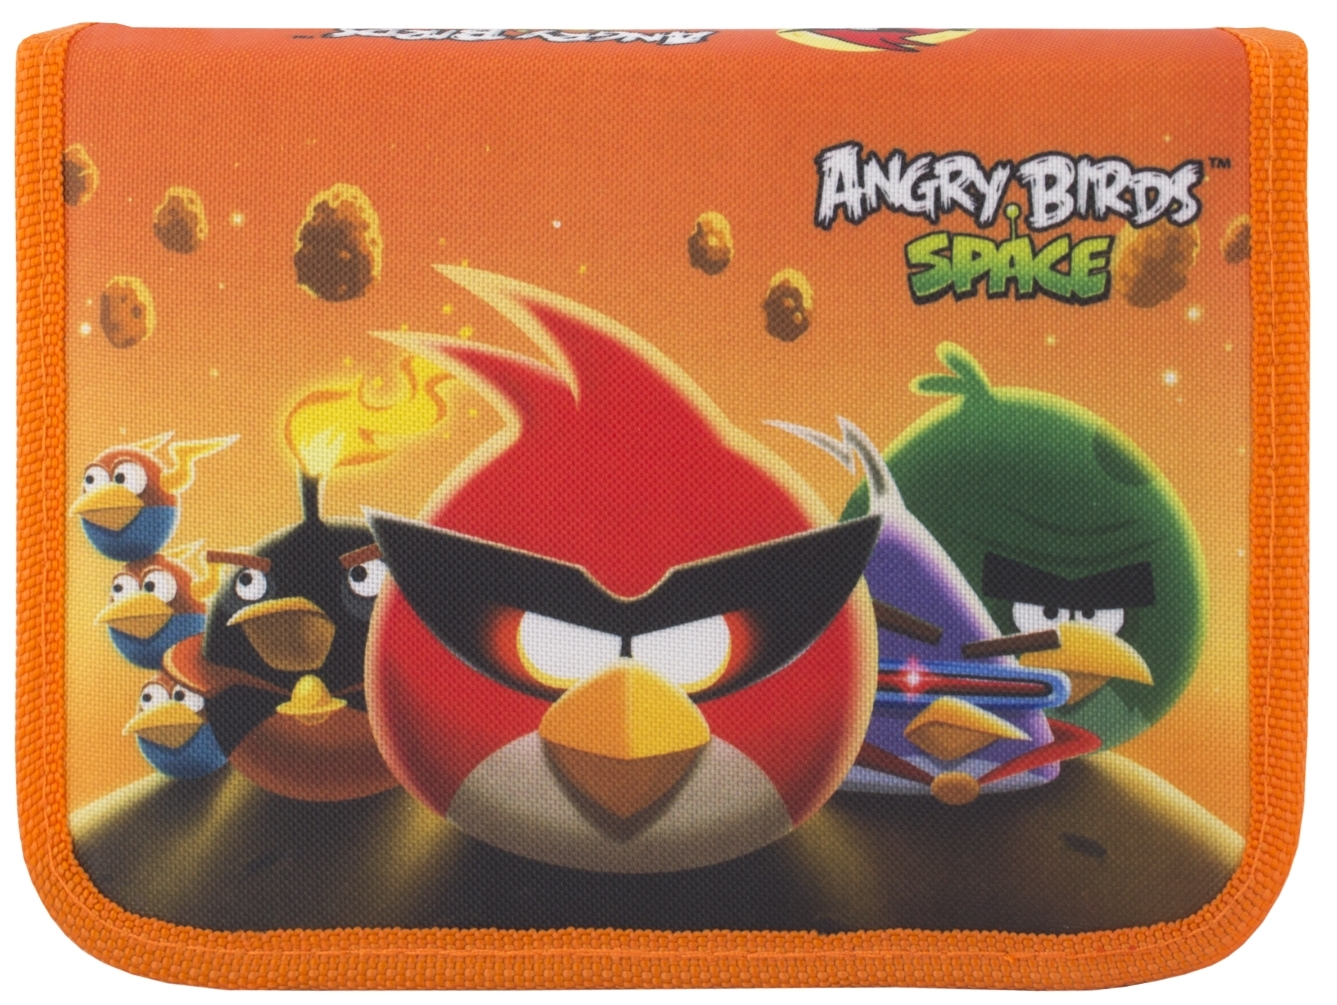 Rozetka cool for school angry birds space 1 rozetka cool for school angry birds space 1 03380 cool for school angry birds space 1 voltagebd Images